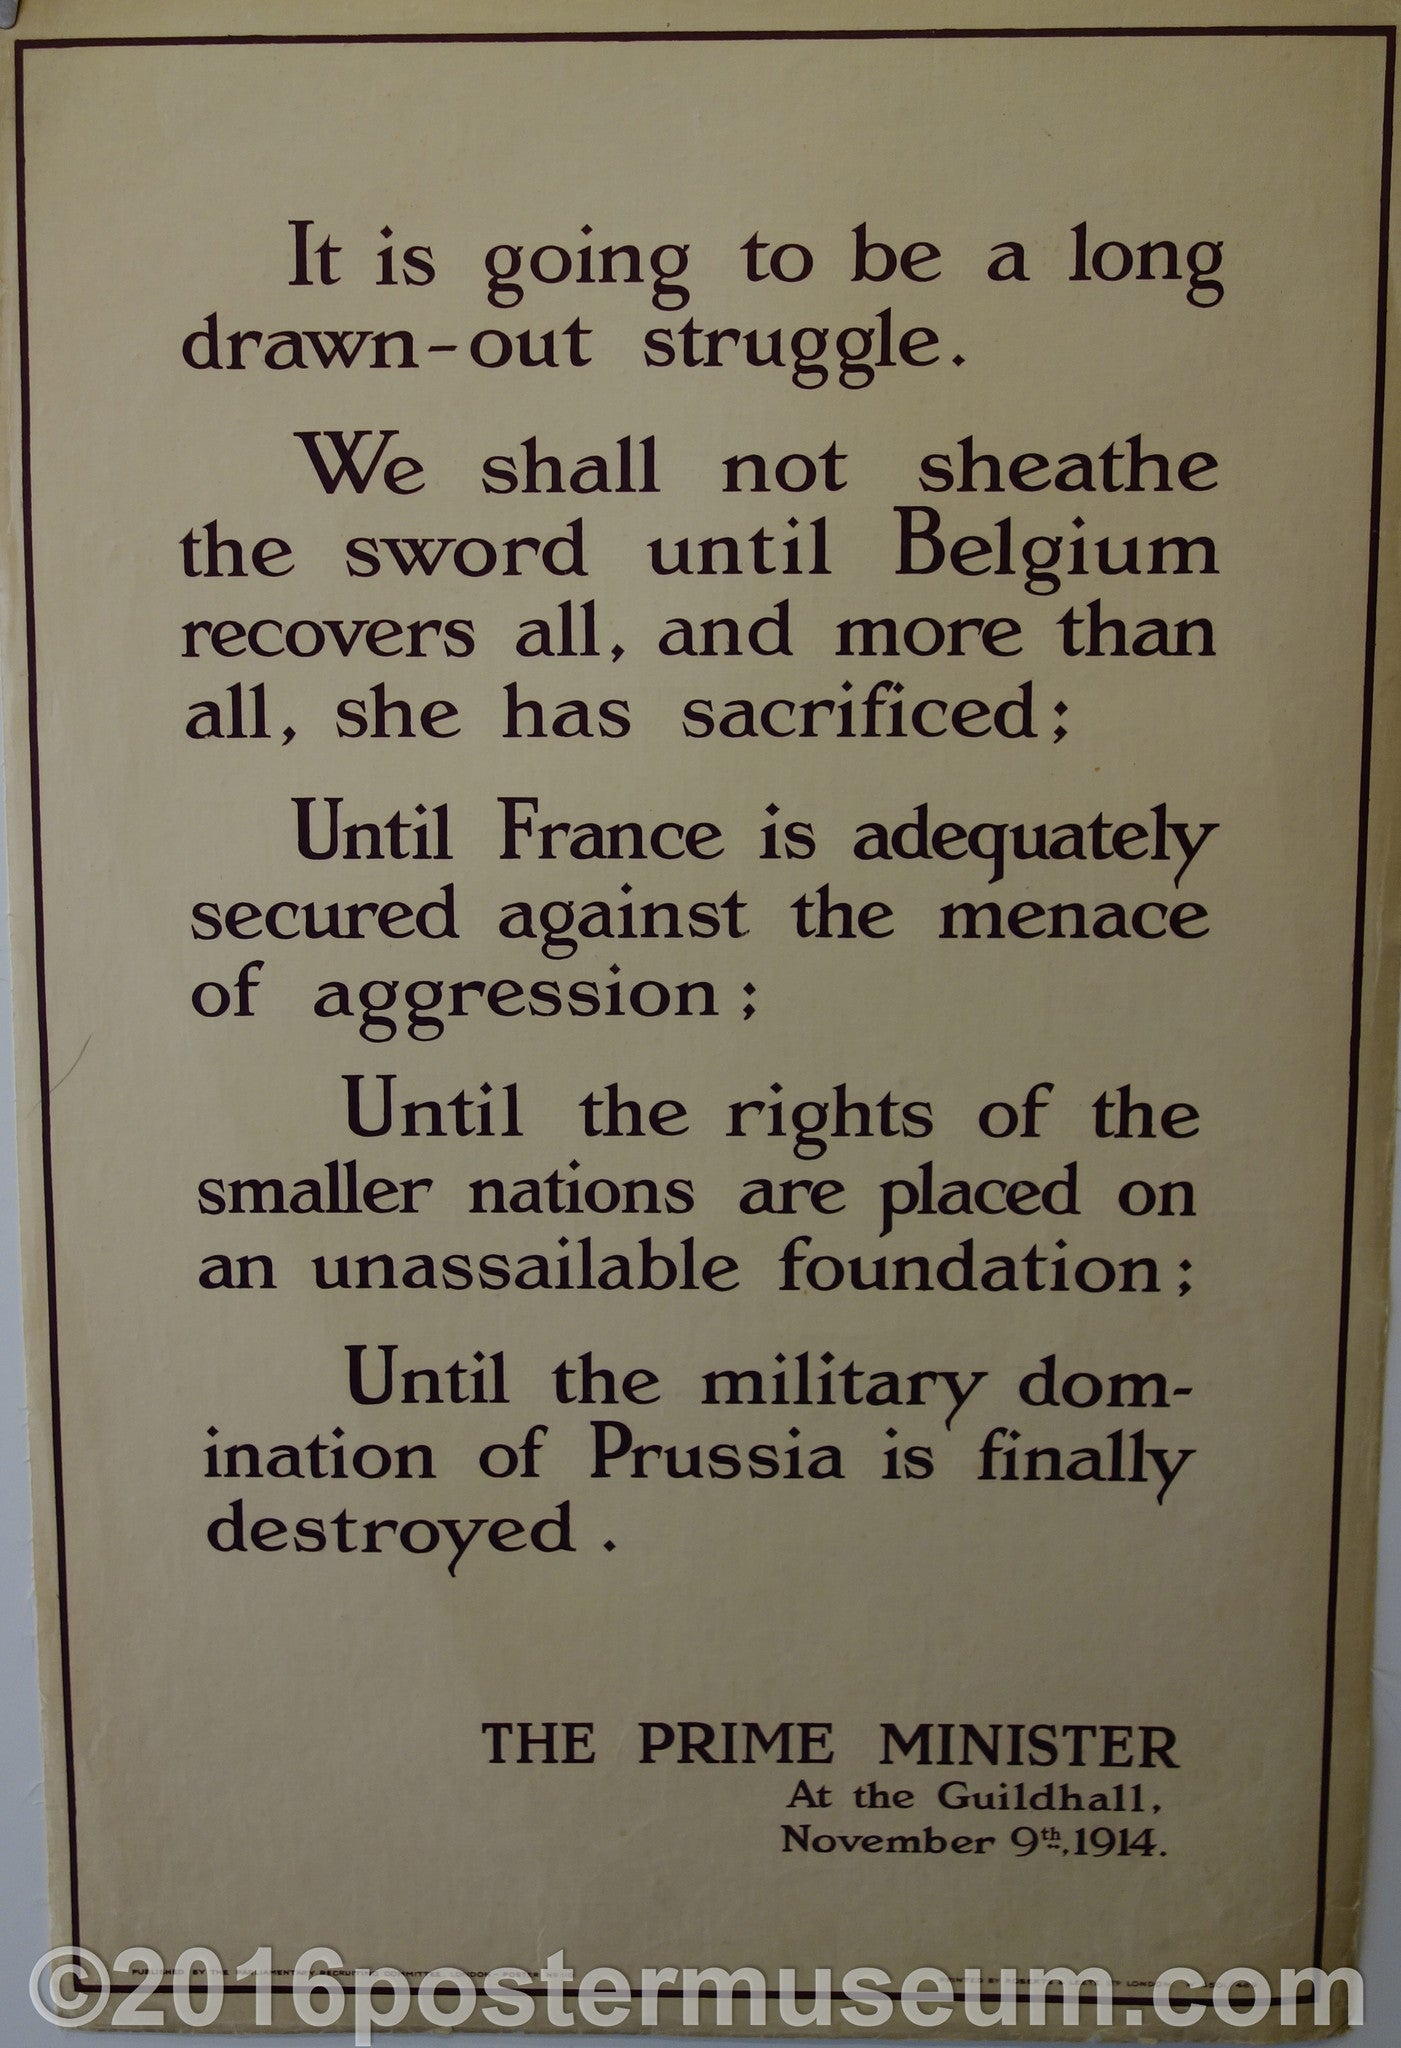 It is going to be a long and drawn out struggle (1914)